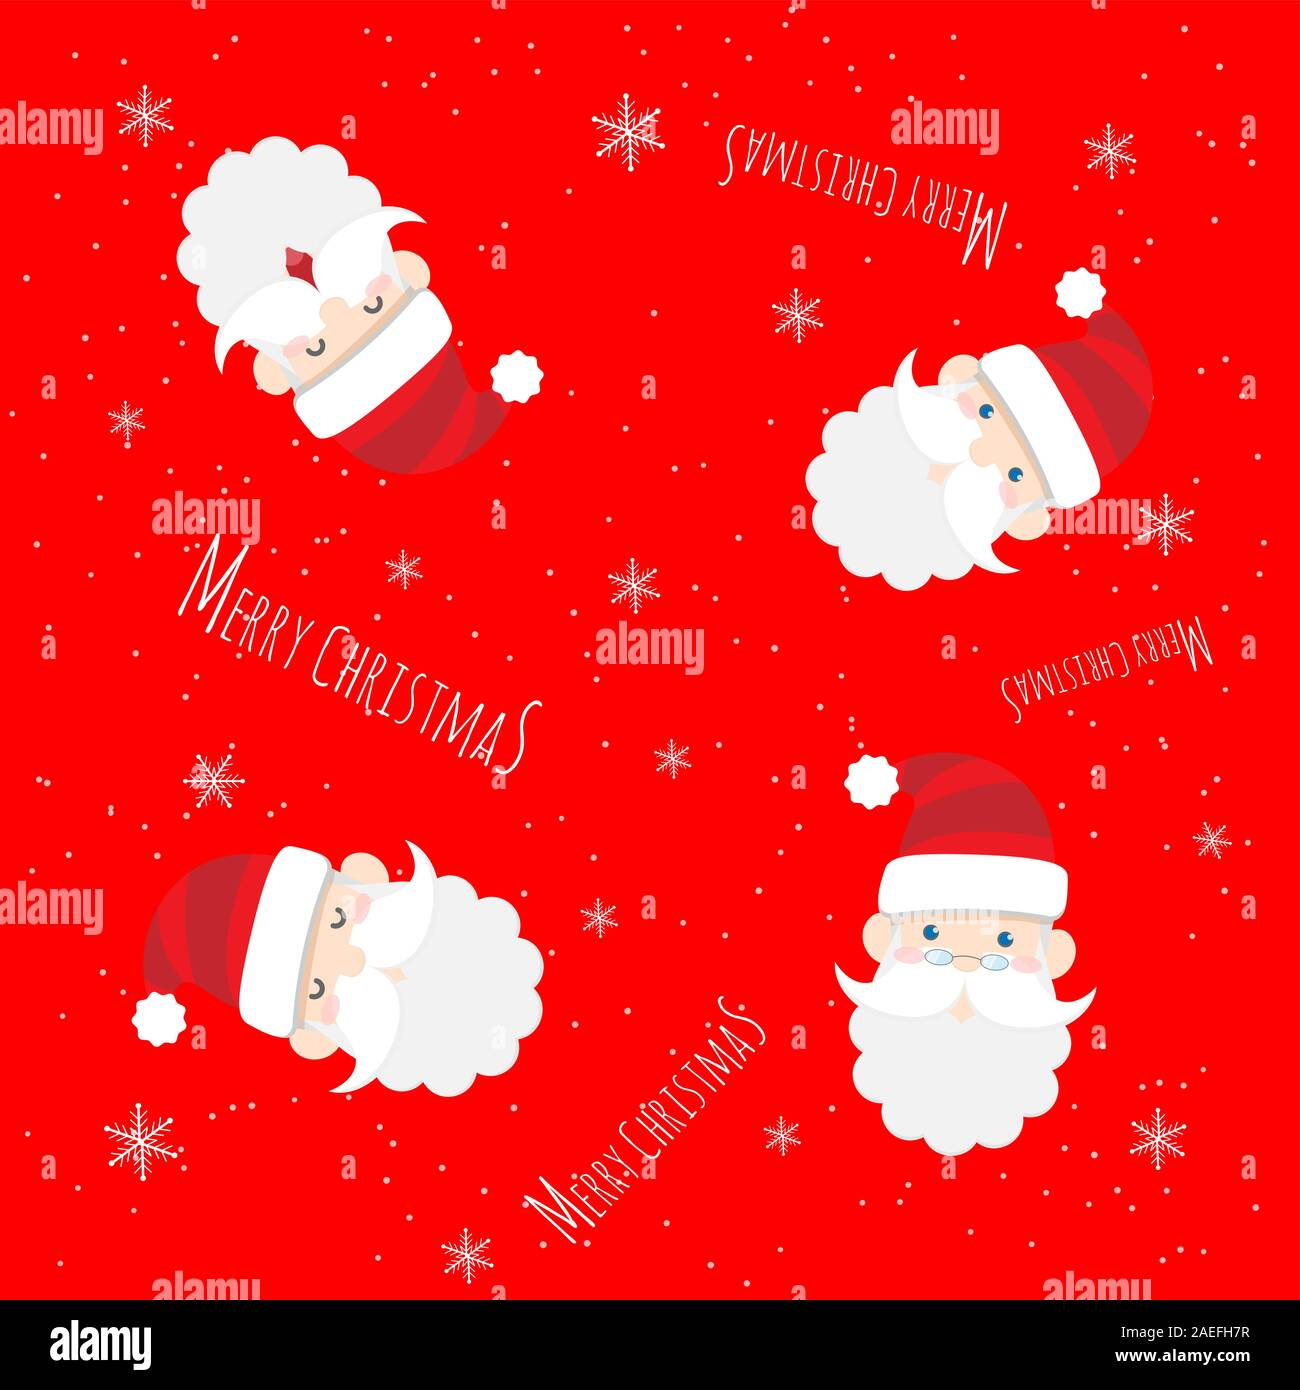 vector cute santa claus cartoon with text merry christmas pattern on red background for christmas wallpaper background 2AEFH7R